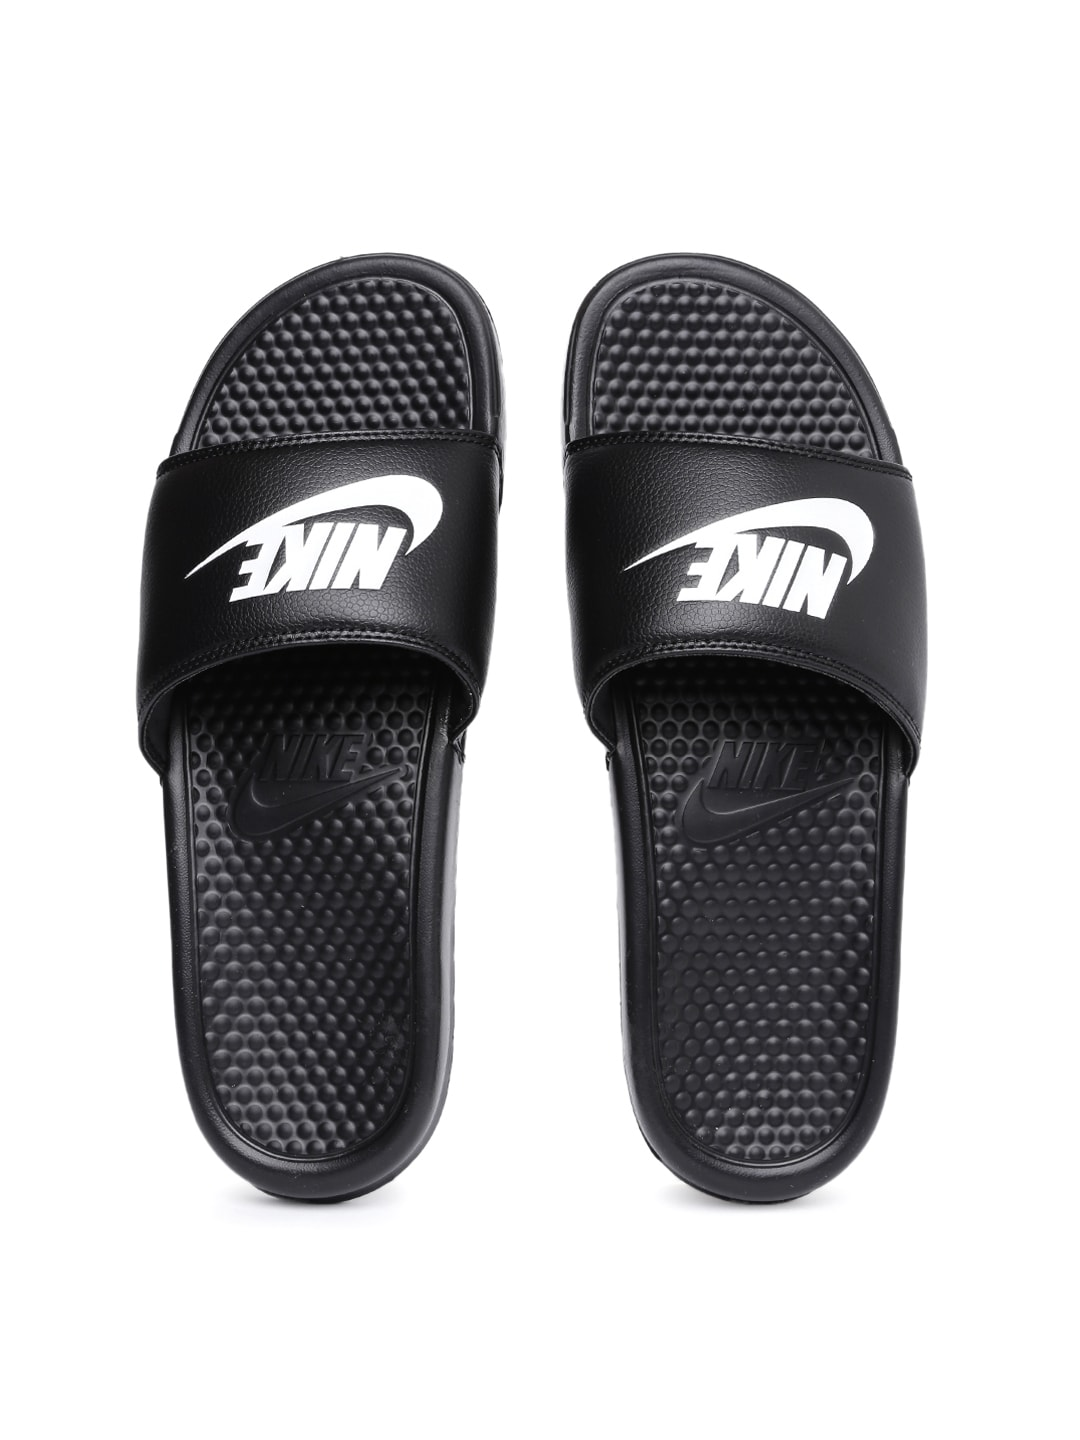 032d1bcc25c8 Nike Flip-Flops - Buy Nike Flip-Flops for Men Women Online